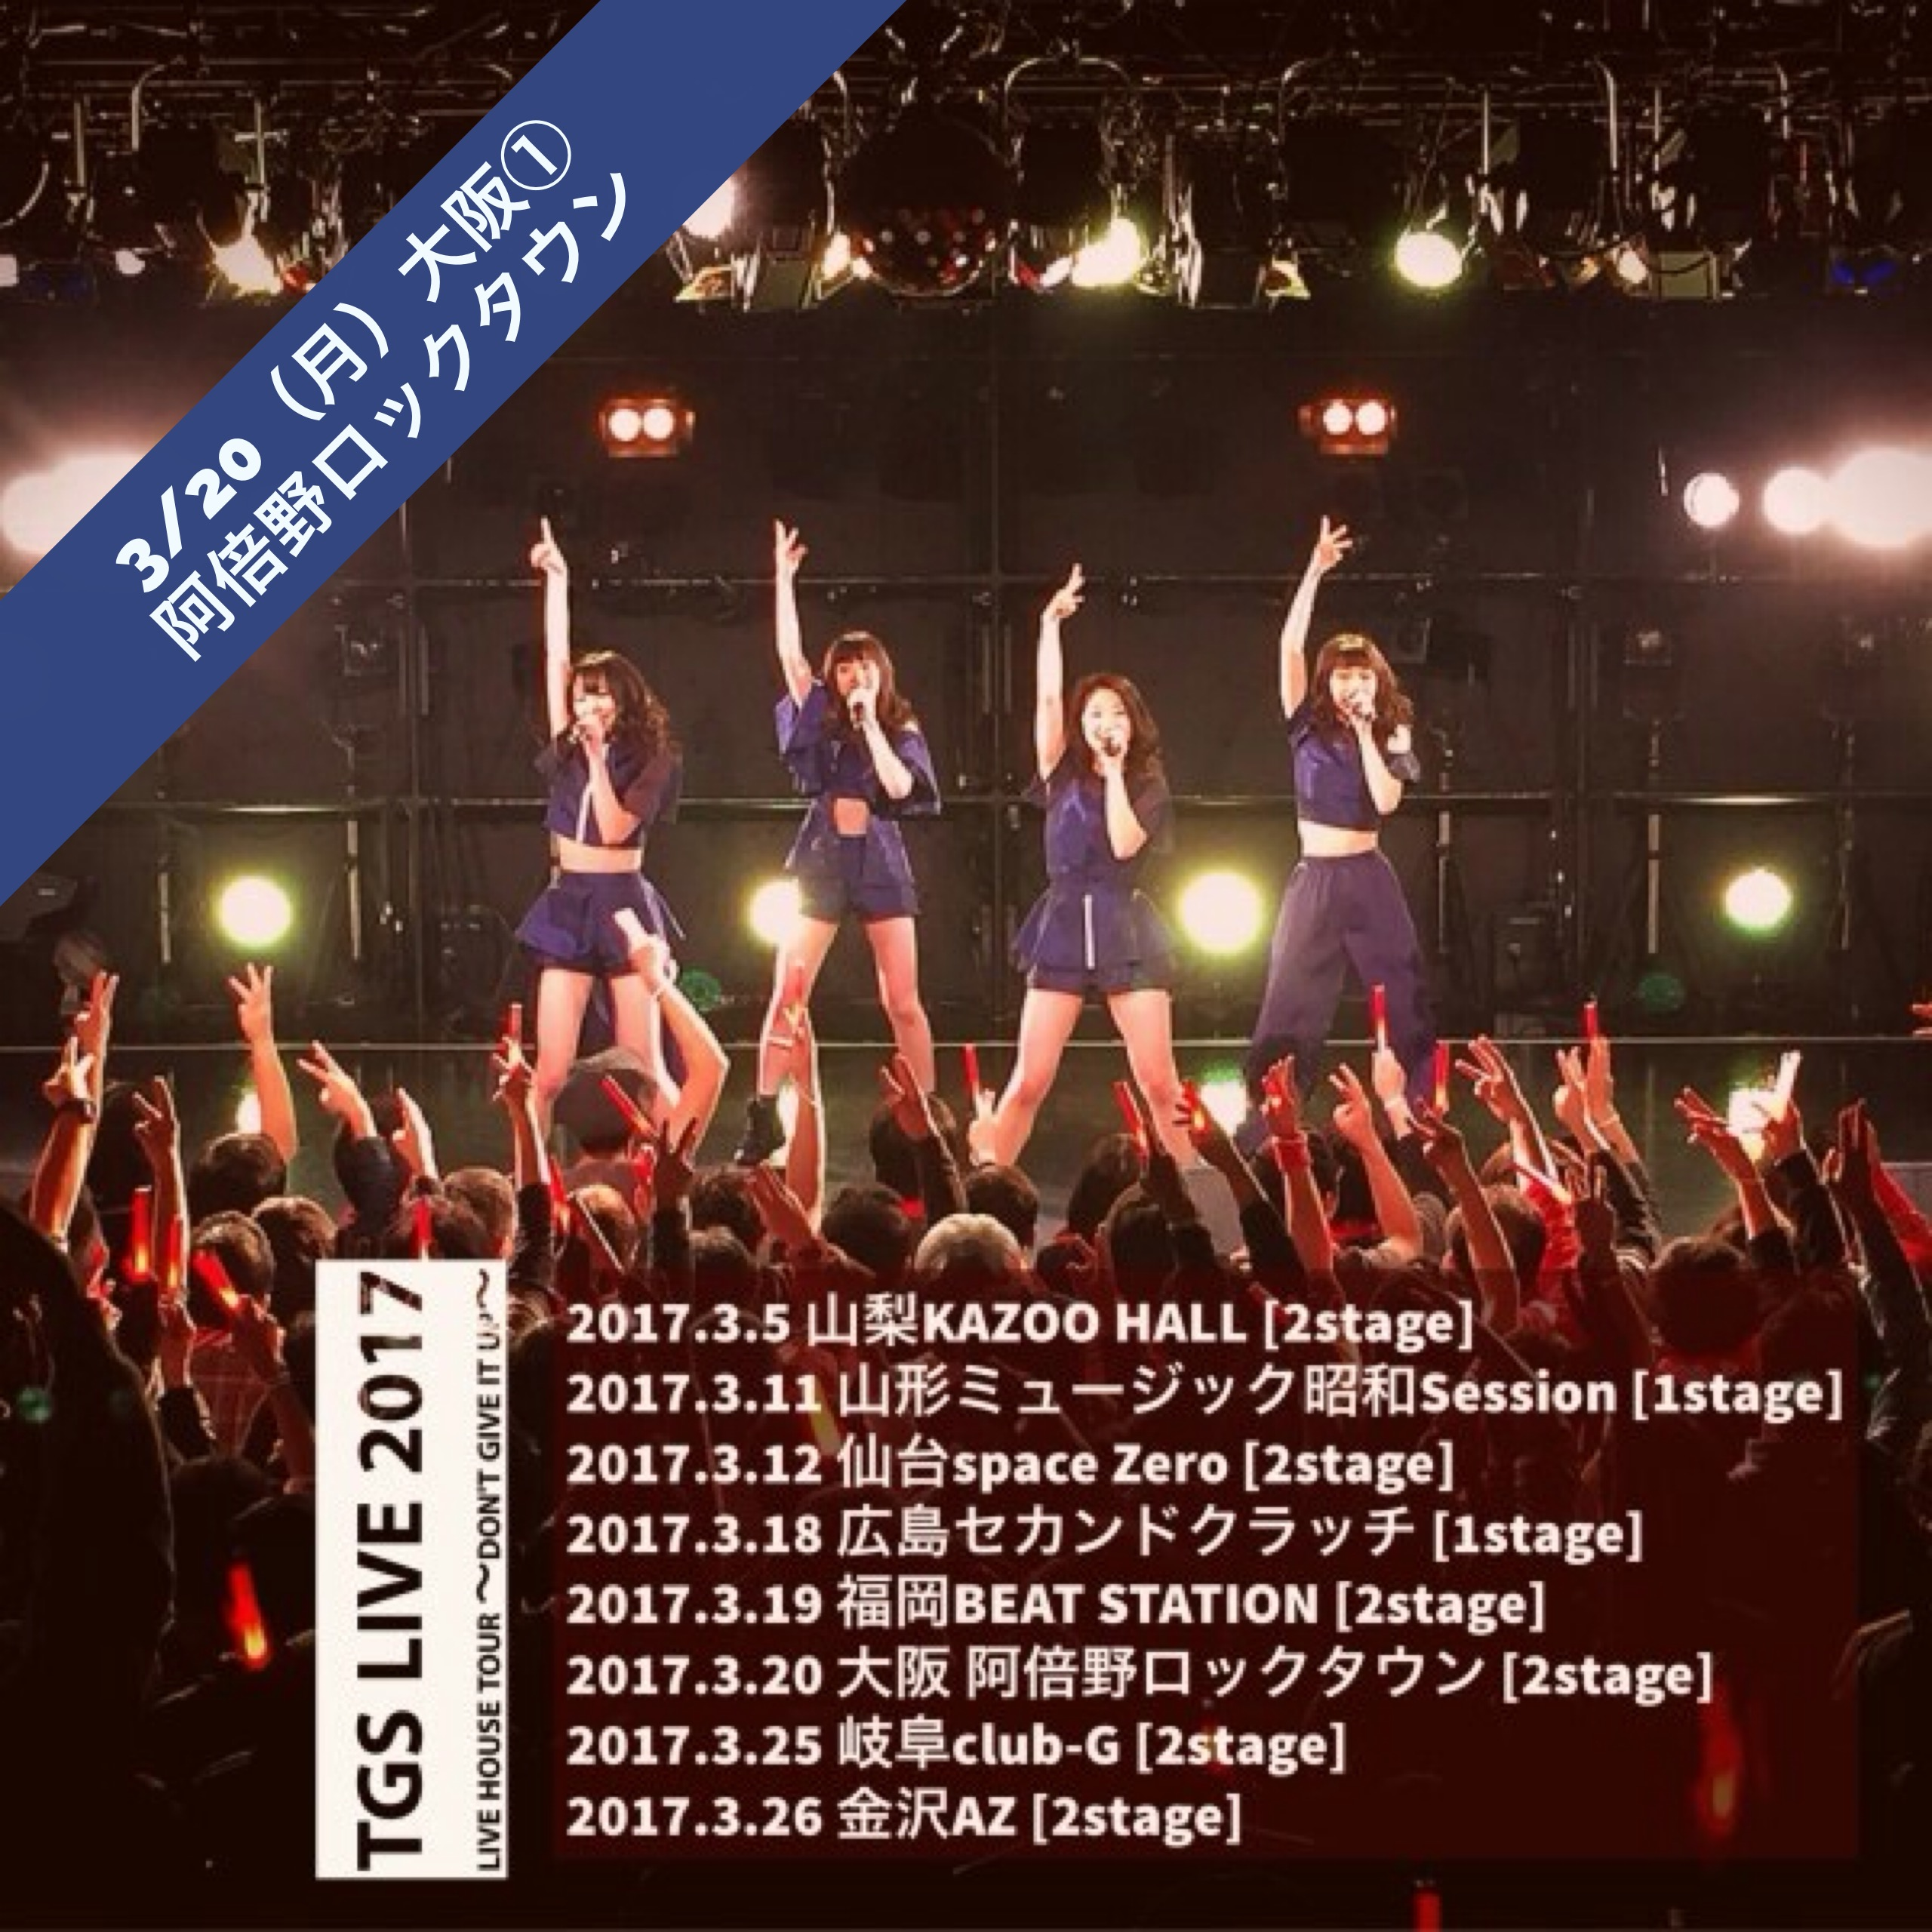 TGS LIVE 2017 LIVE HOUSE TOUR 〜Don't give it up〜(3/20大阪①13:00公演)